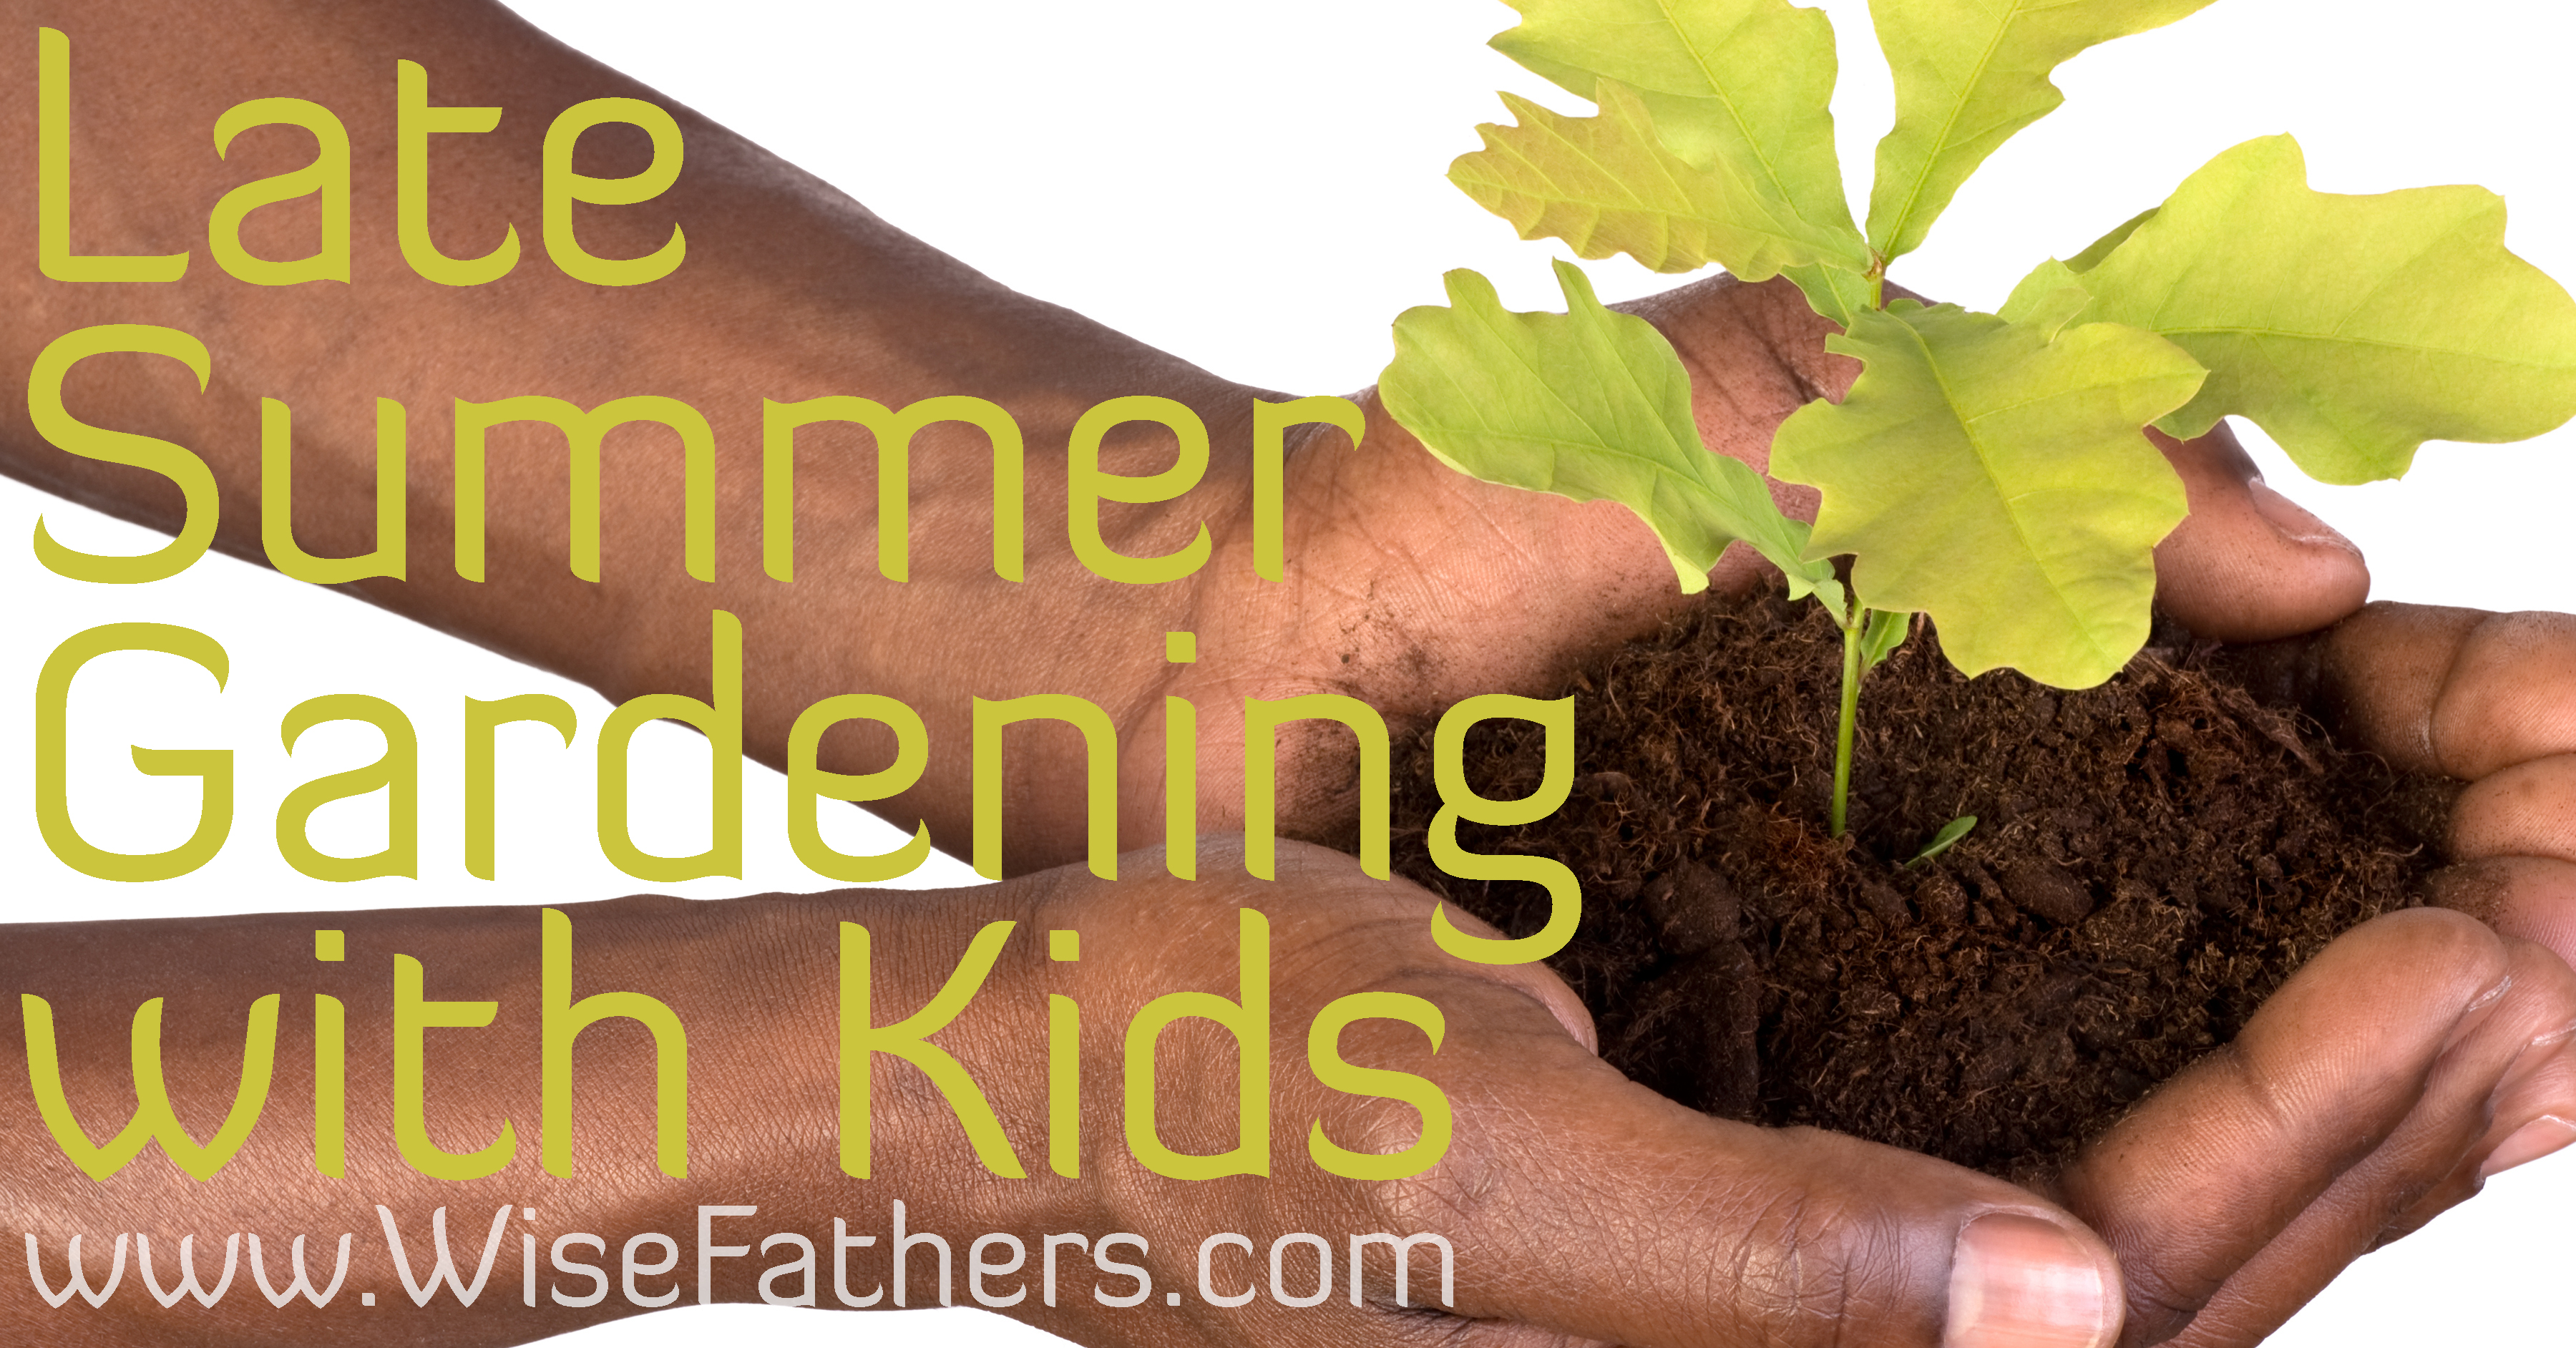 Late Summer Gardening with Kids